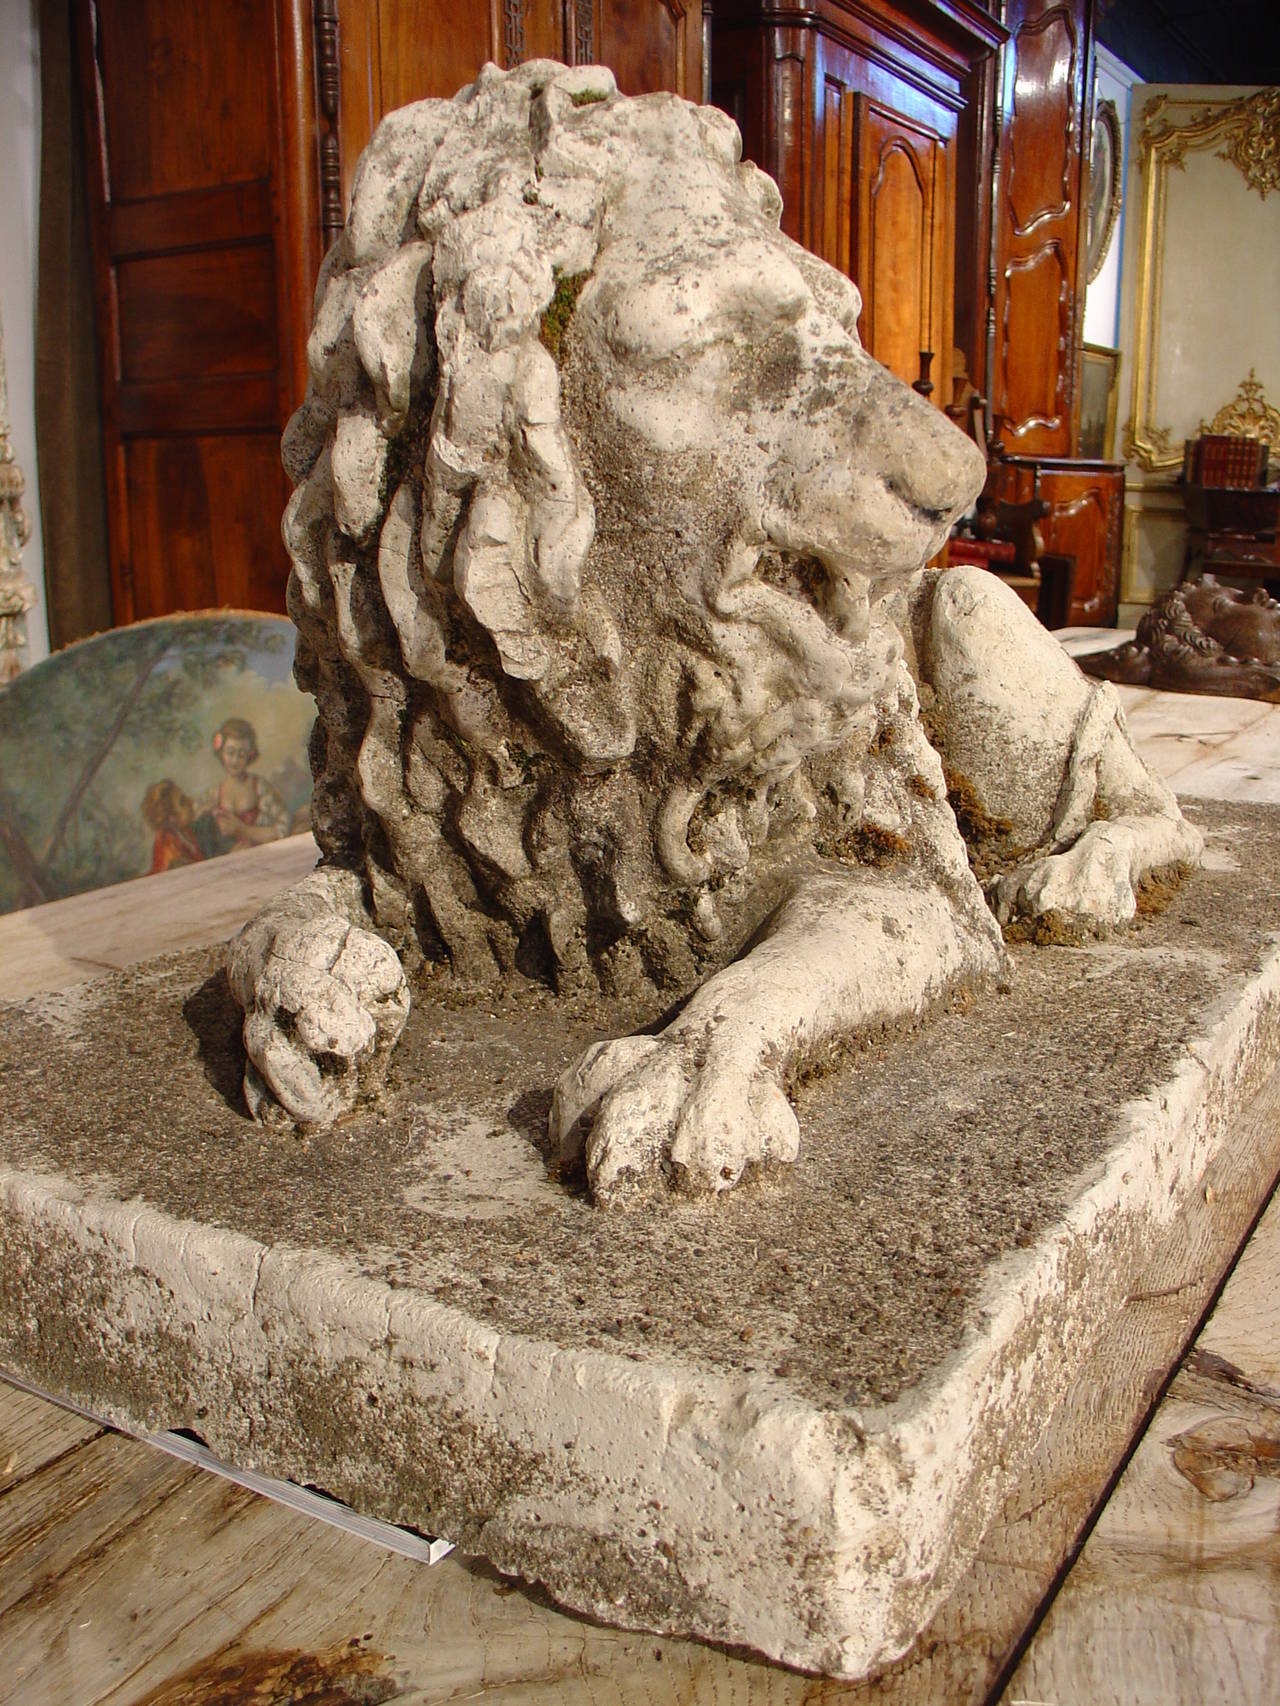 This is a 19th century French reconstituted stone lion statue lying down on a rectangular base. The sculptor who did the original of this statue has portrayed the lion in a reclining position on his right side. His right paw is curled inward and his